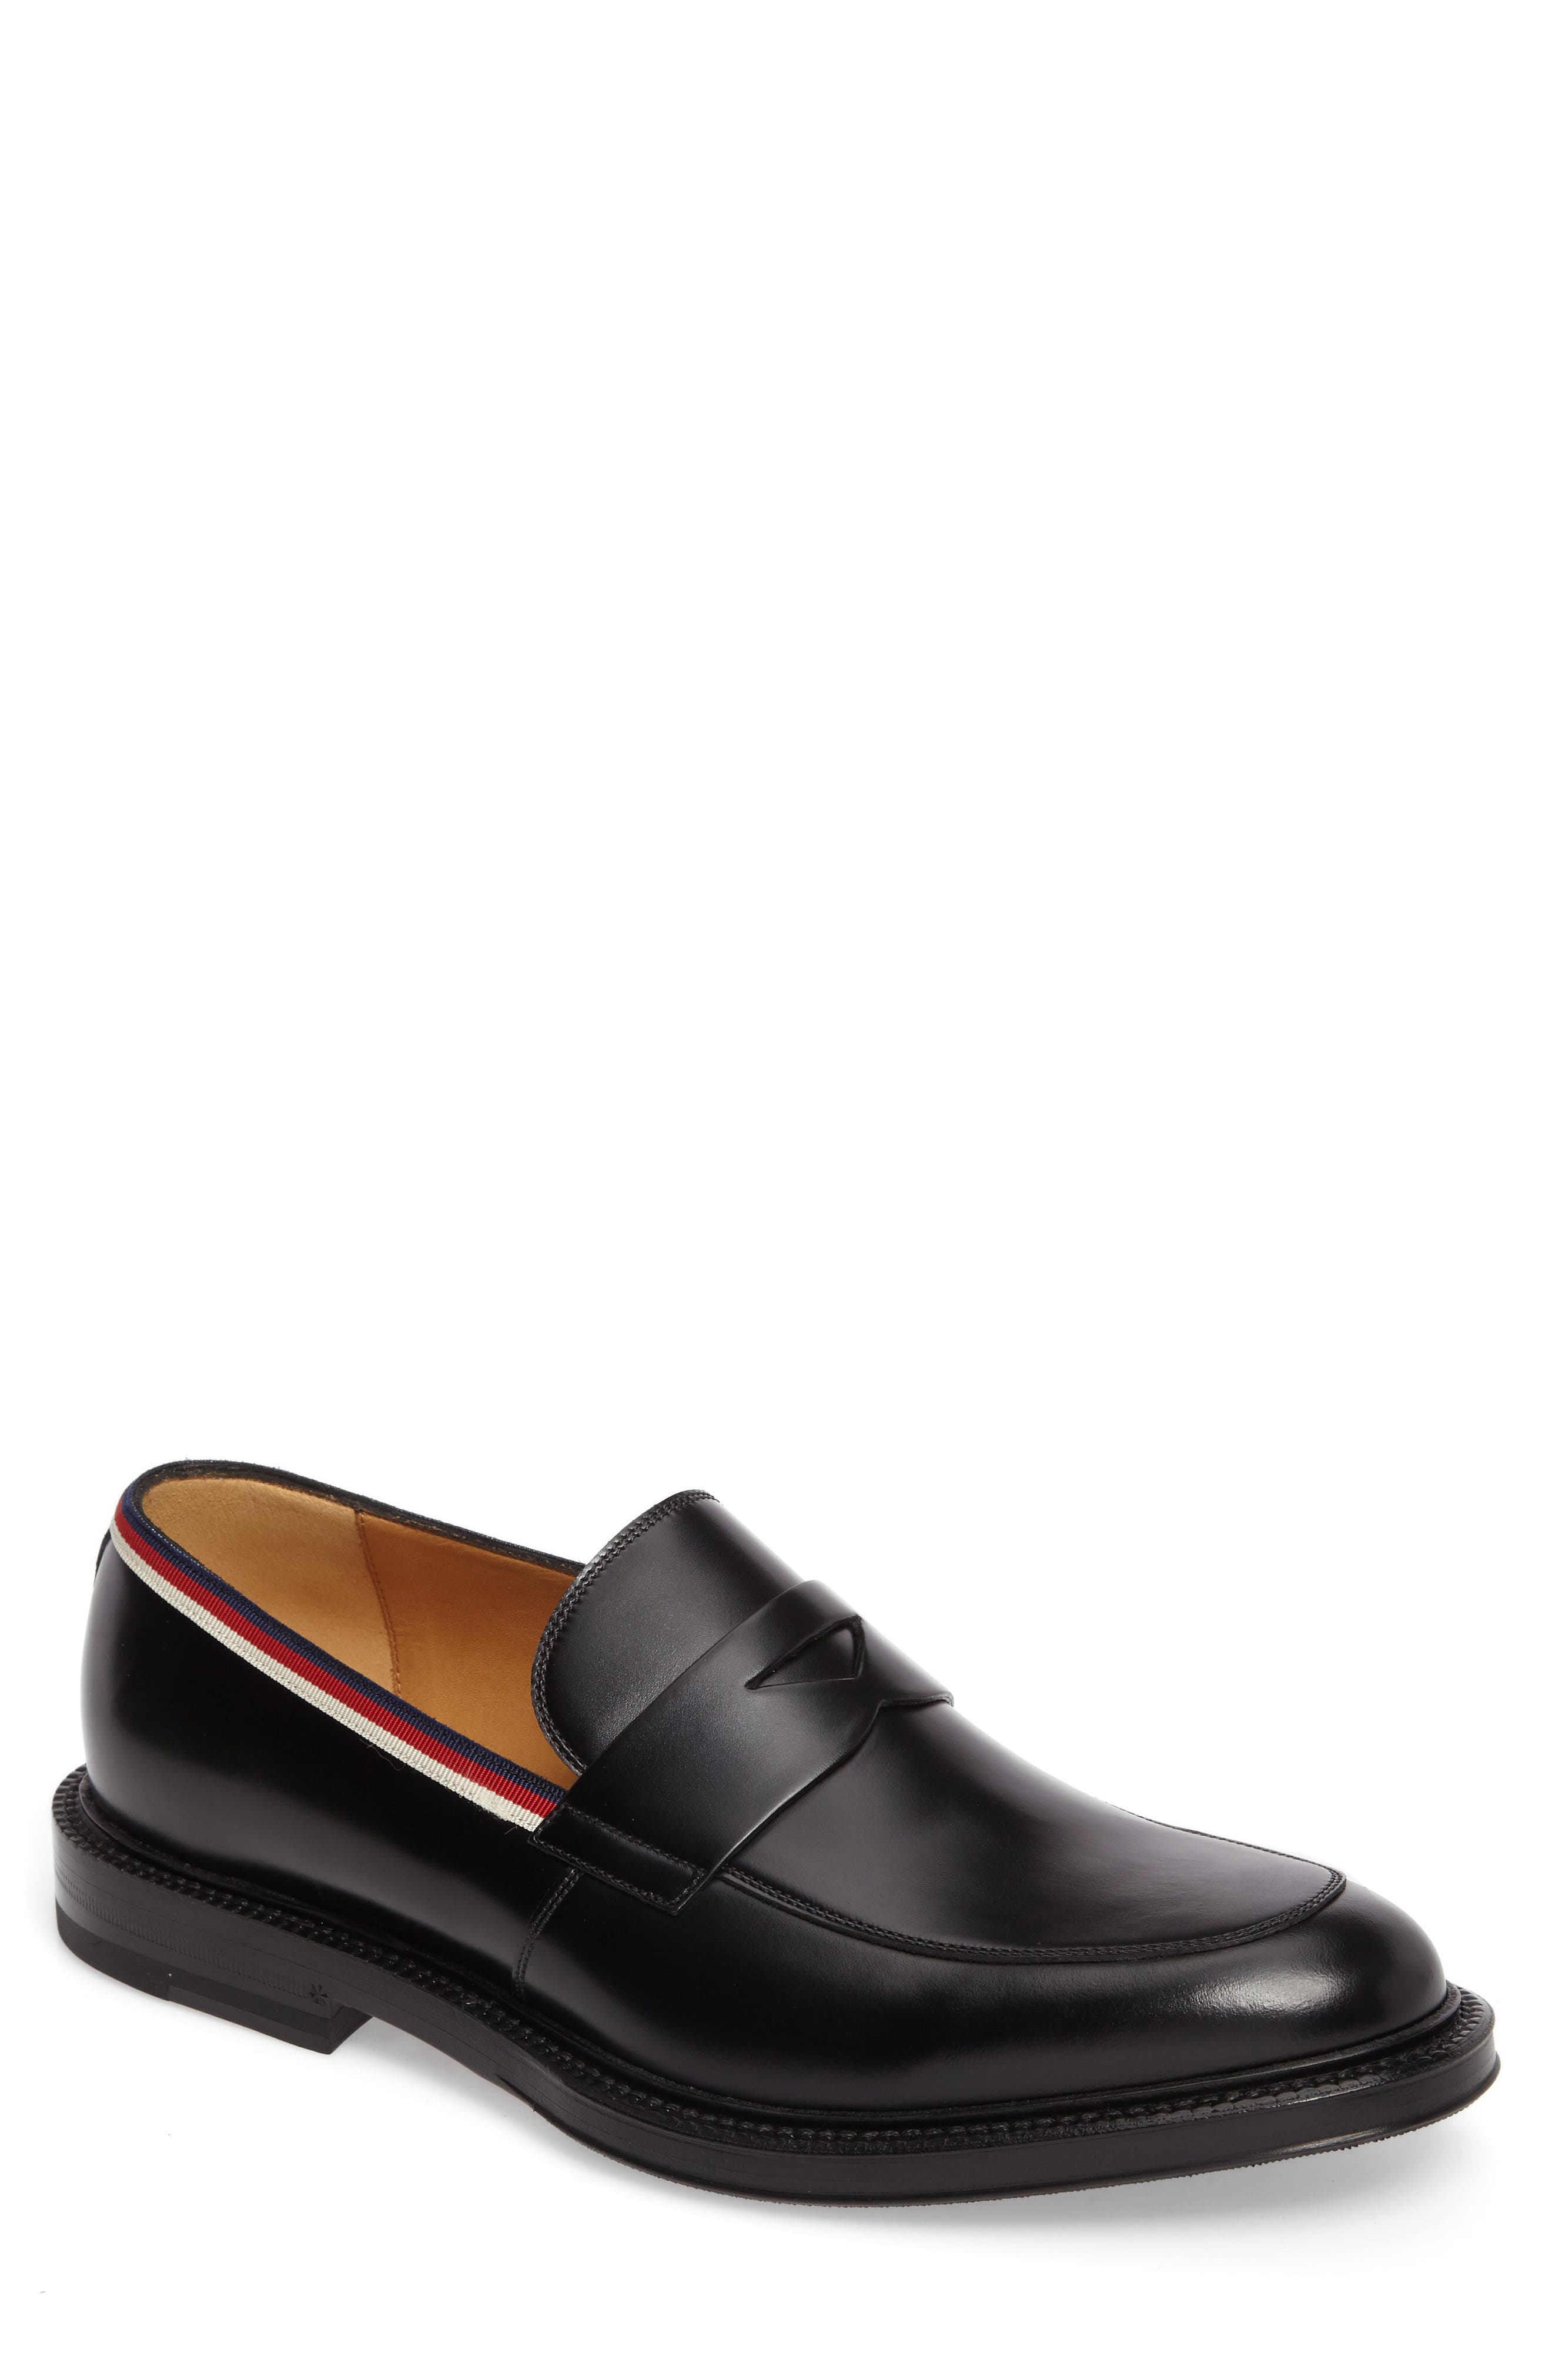 GUCCI Beyond Penny Loafer, Main, color, 007